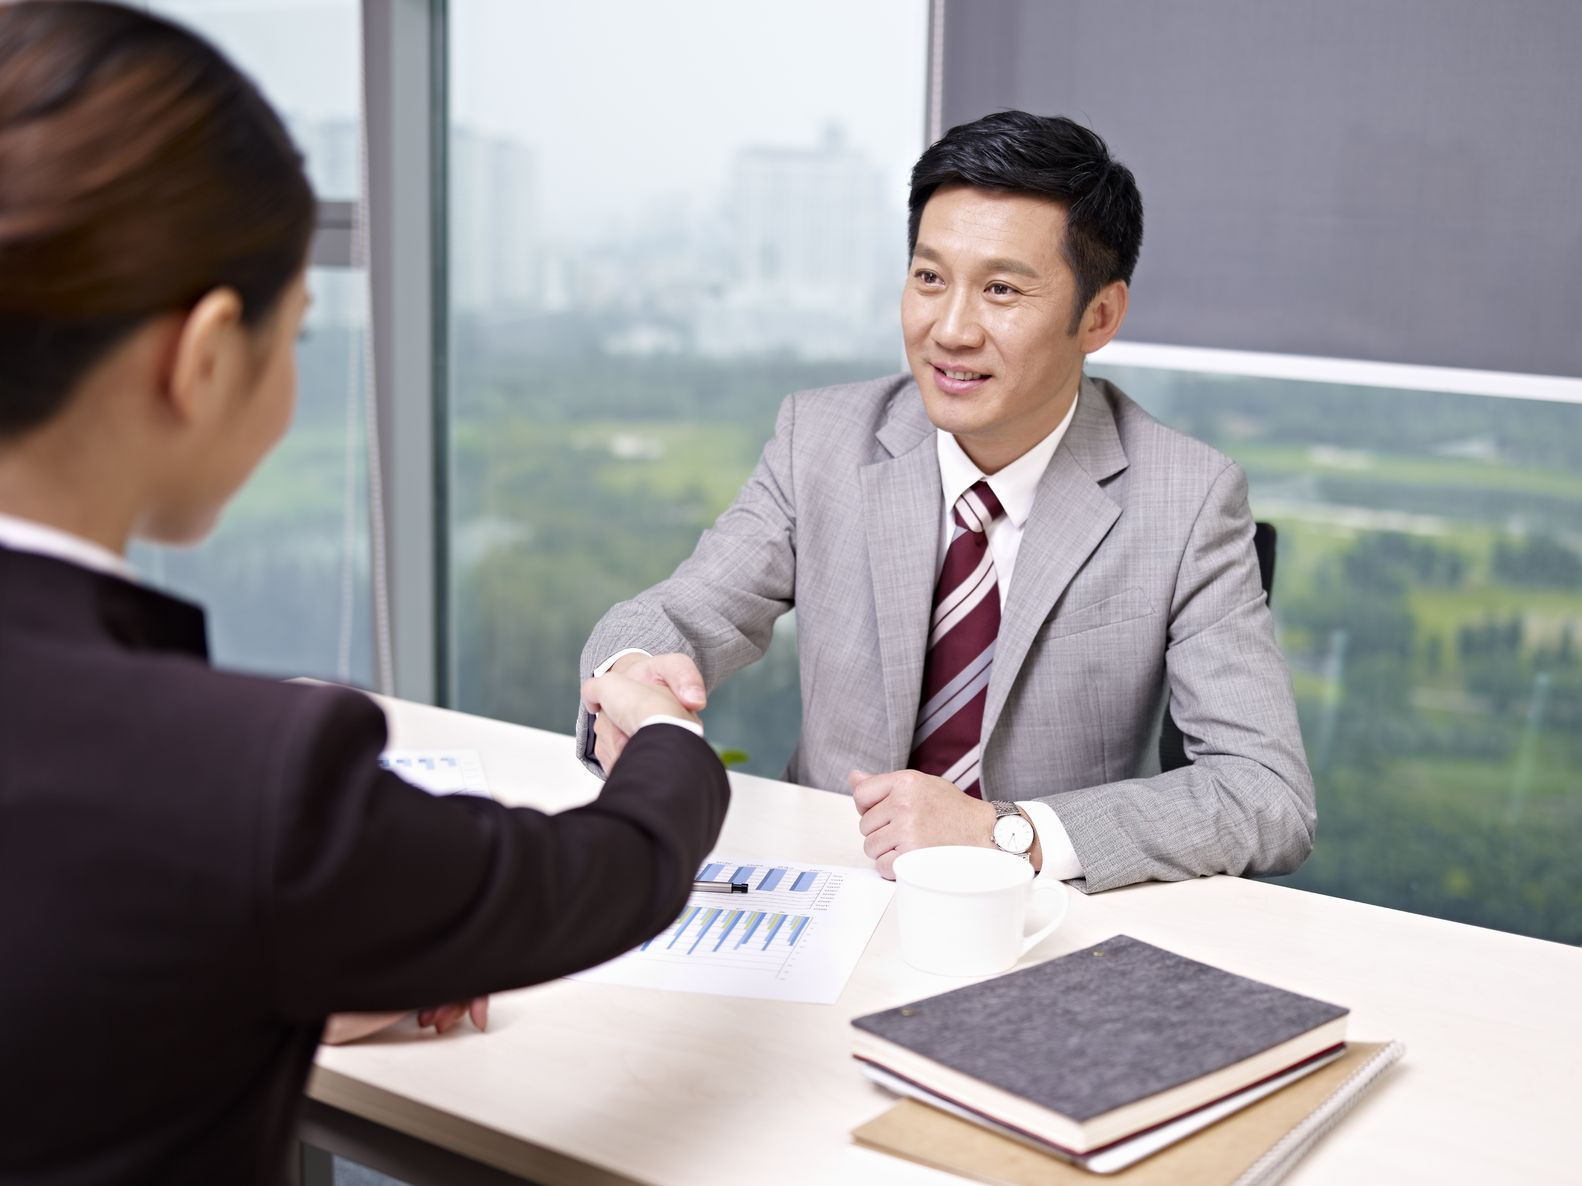 A more efficient way to handle job interview